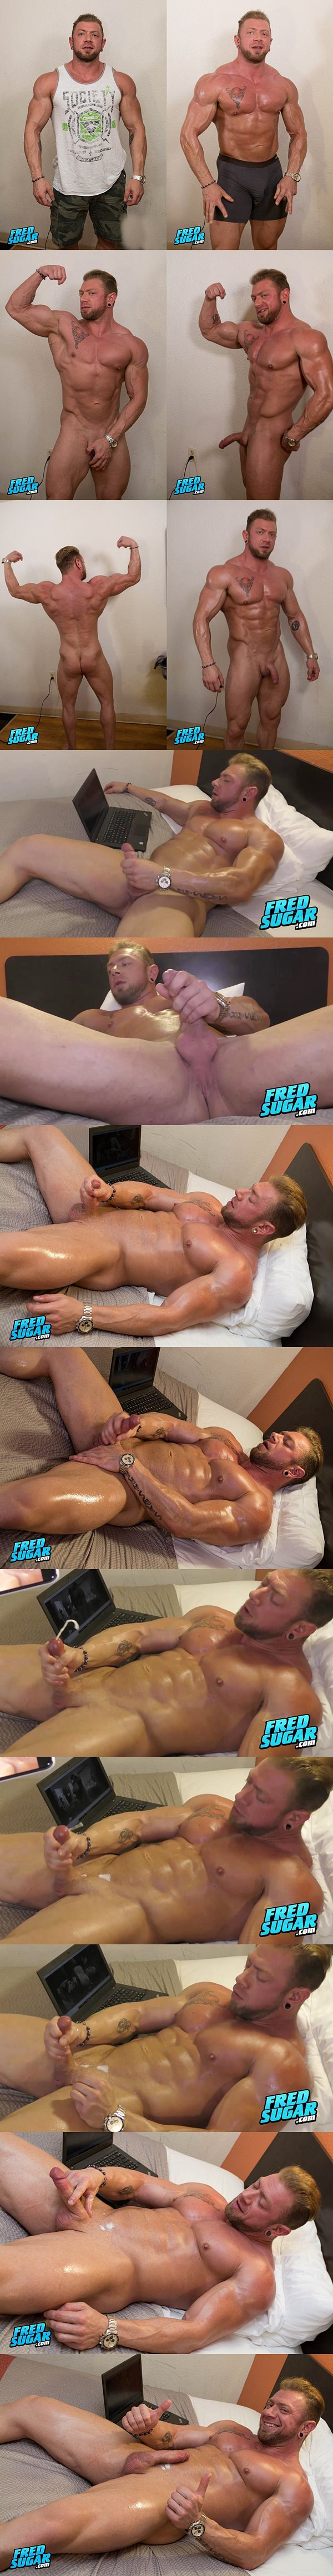 Straight macho hunk Viking Strong returns to show off his muscular naked body before he milks a sticky load out of his hard cock in Viking Strong Returns at Fredsugar